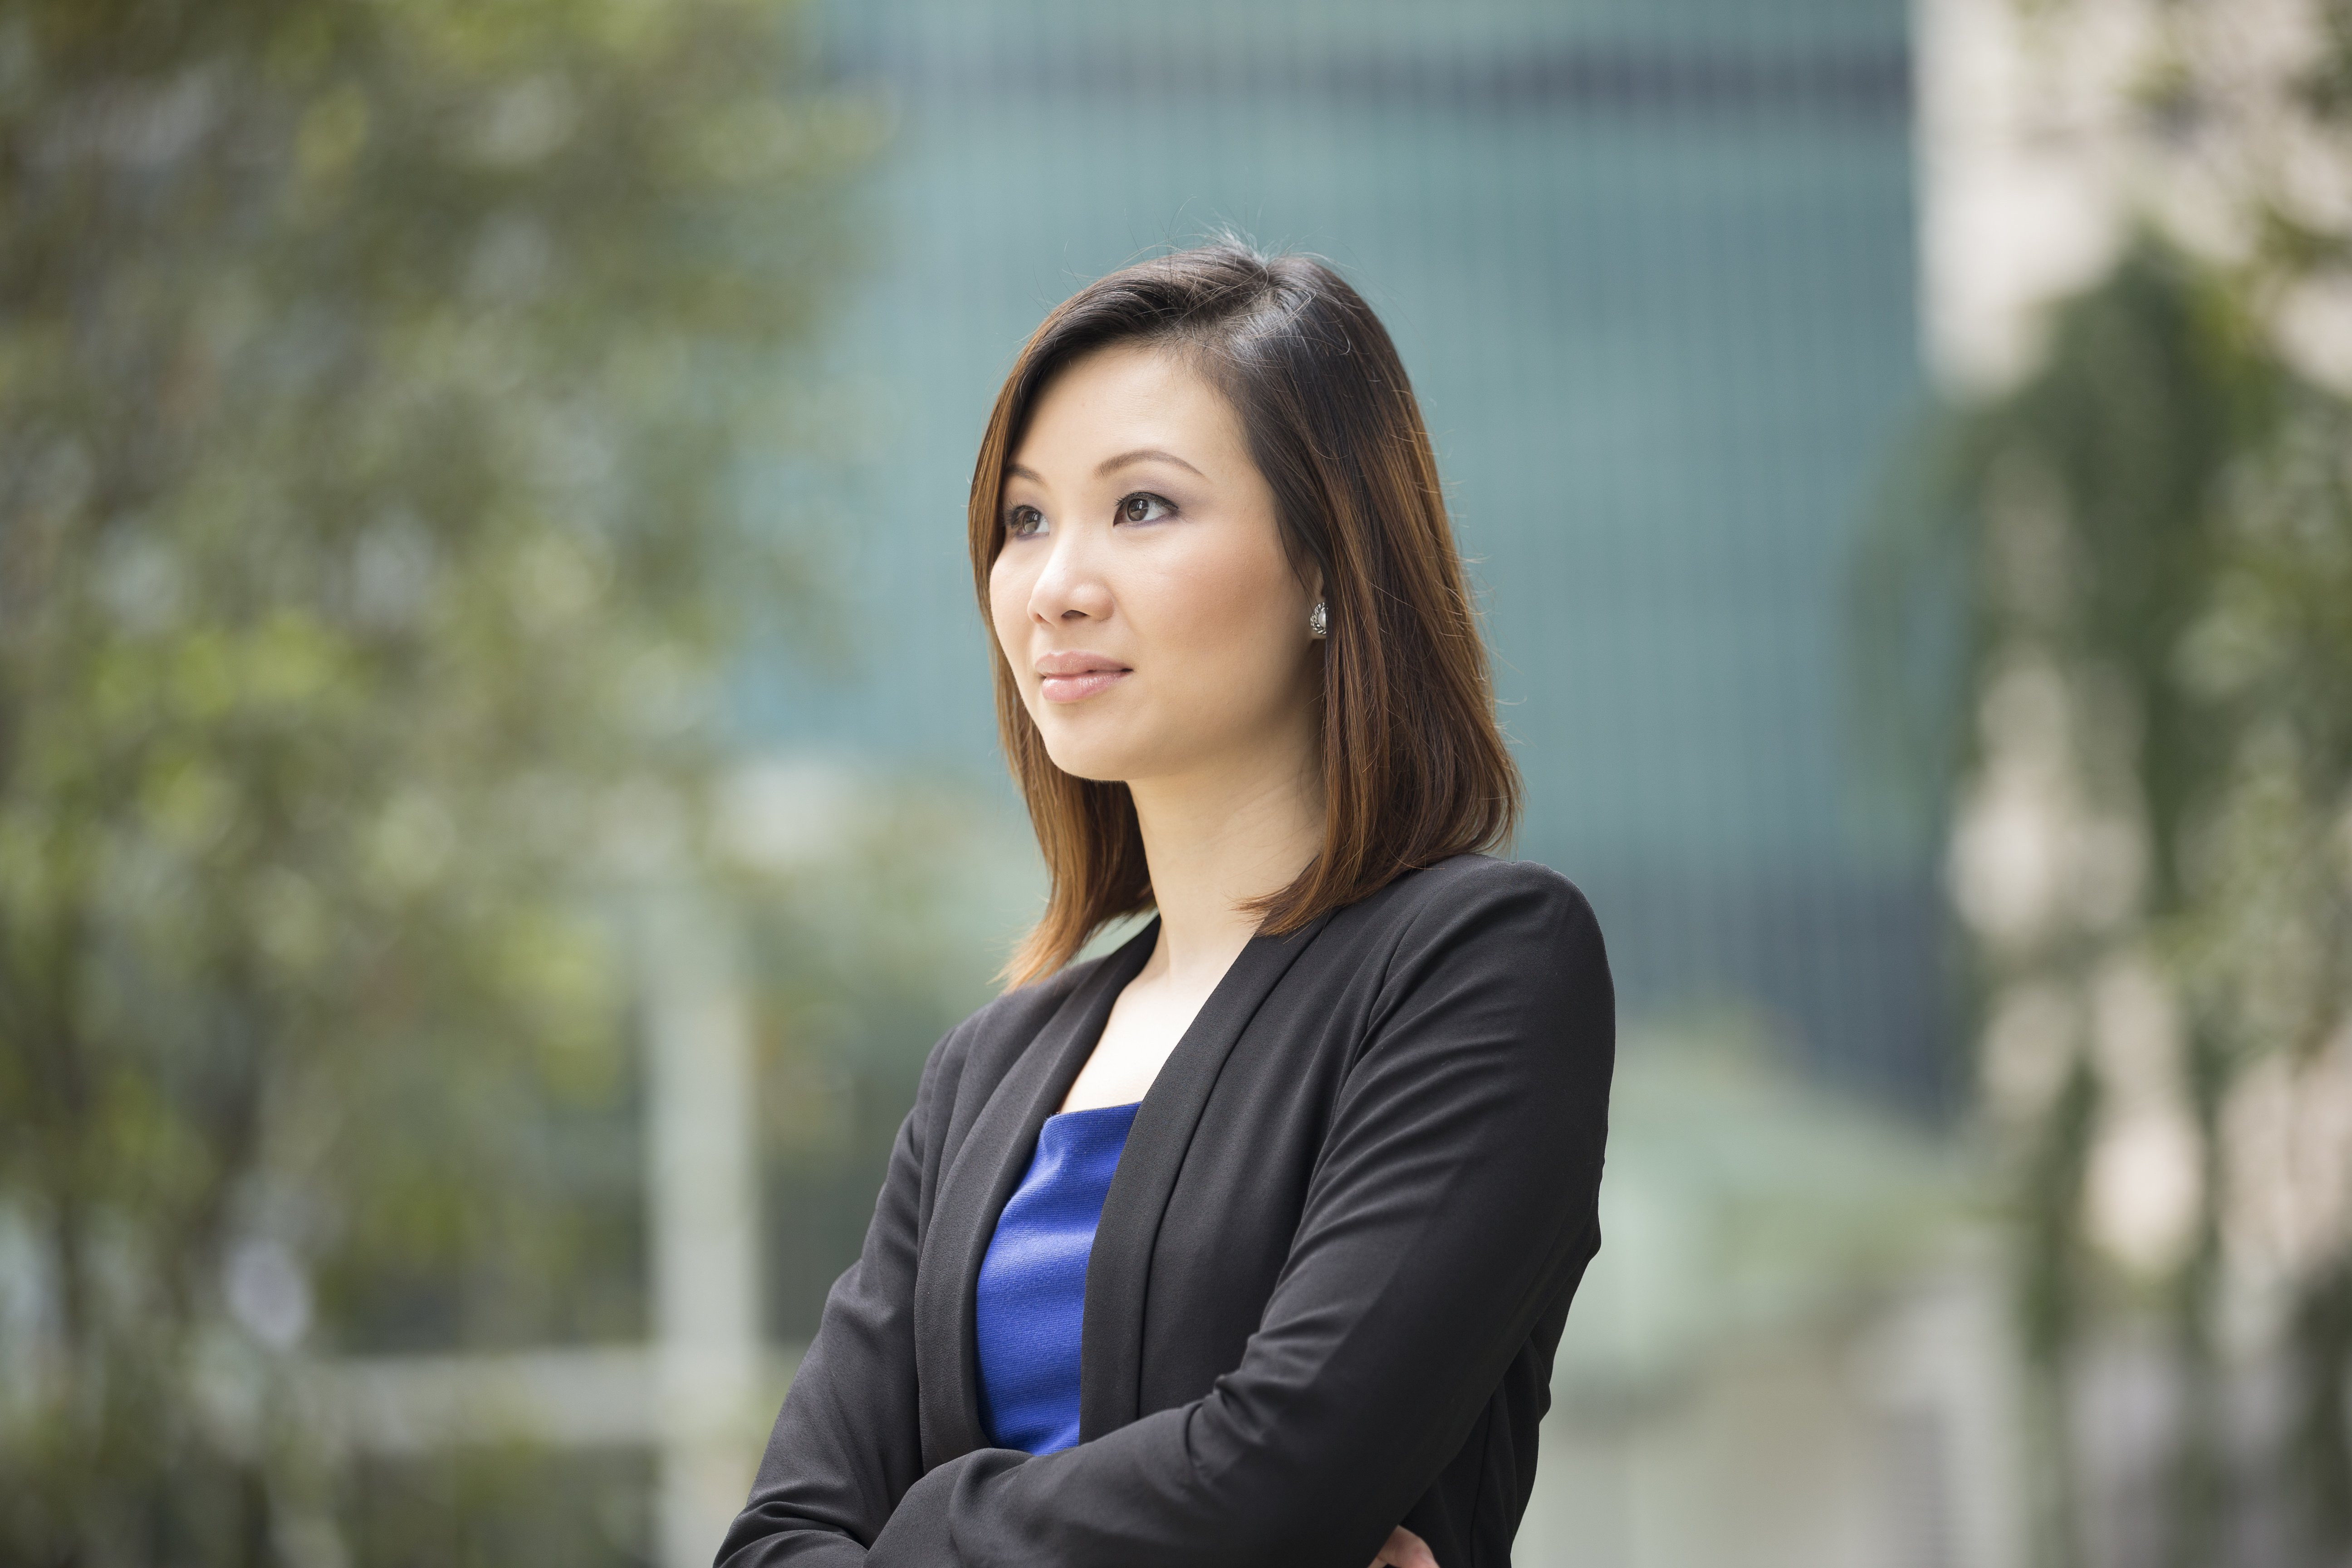 Portrait of thoughtful Chinese businesswoman looking away. Asian business woman in smart business suitstanding outside in modern city.